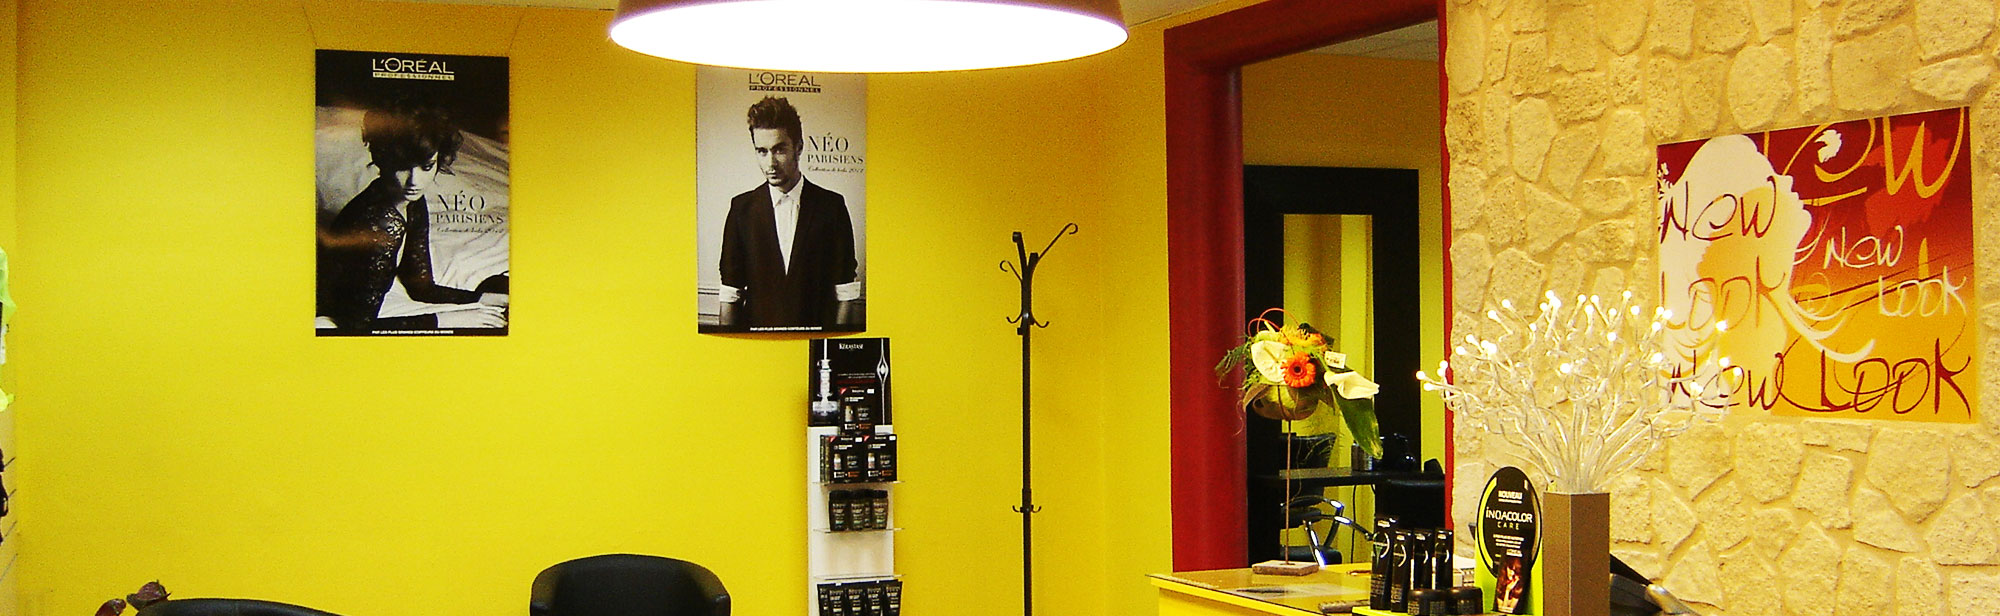 Salon de coiffure new look situ gournay en bray 76 for A new look salon